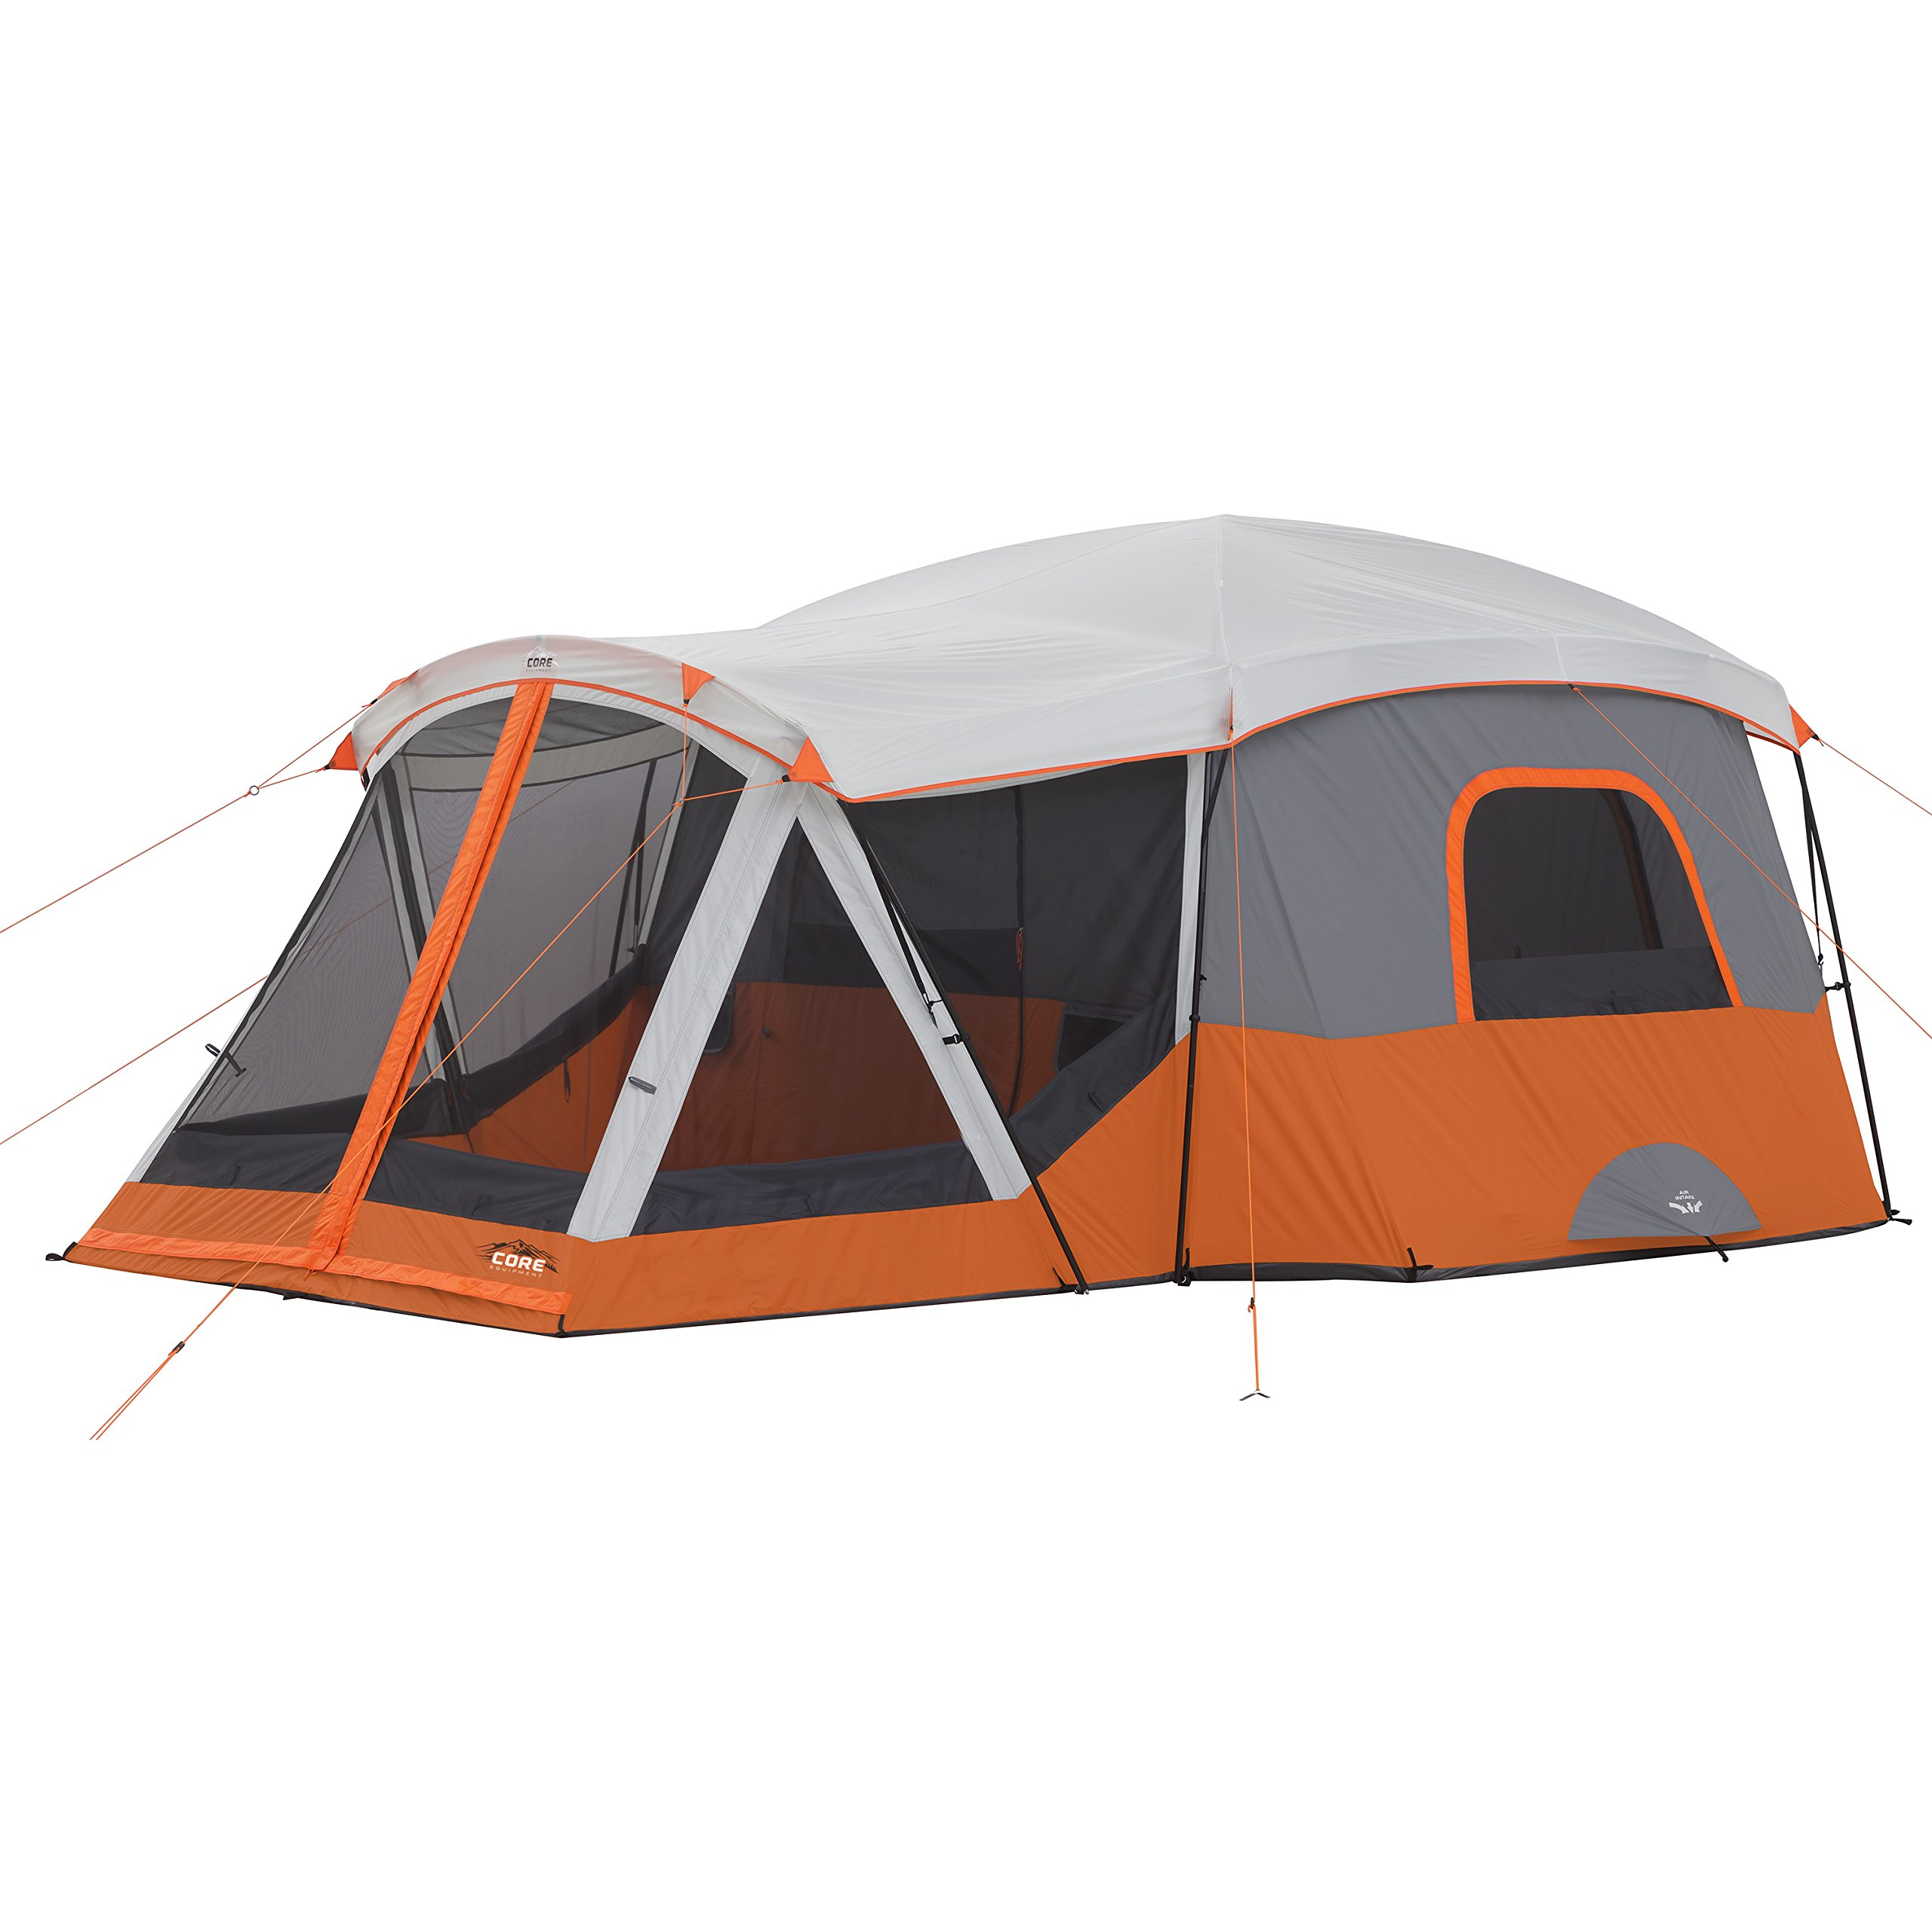 CORE 11 Person Cabin Tent with Screen Room - 17' x 12'